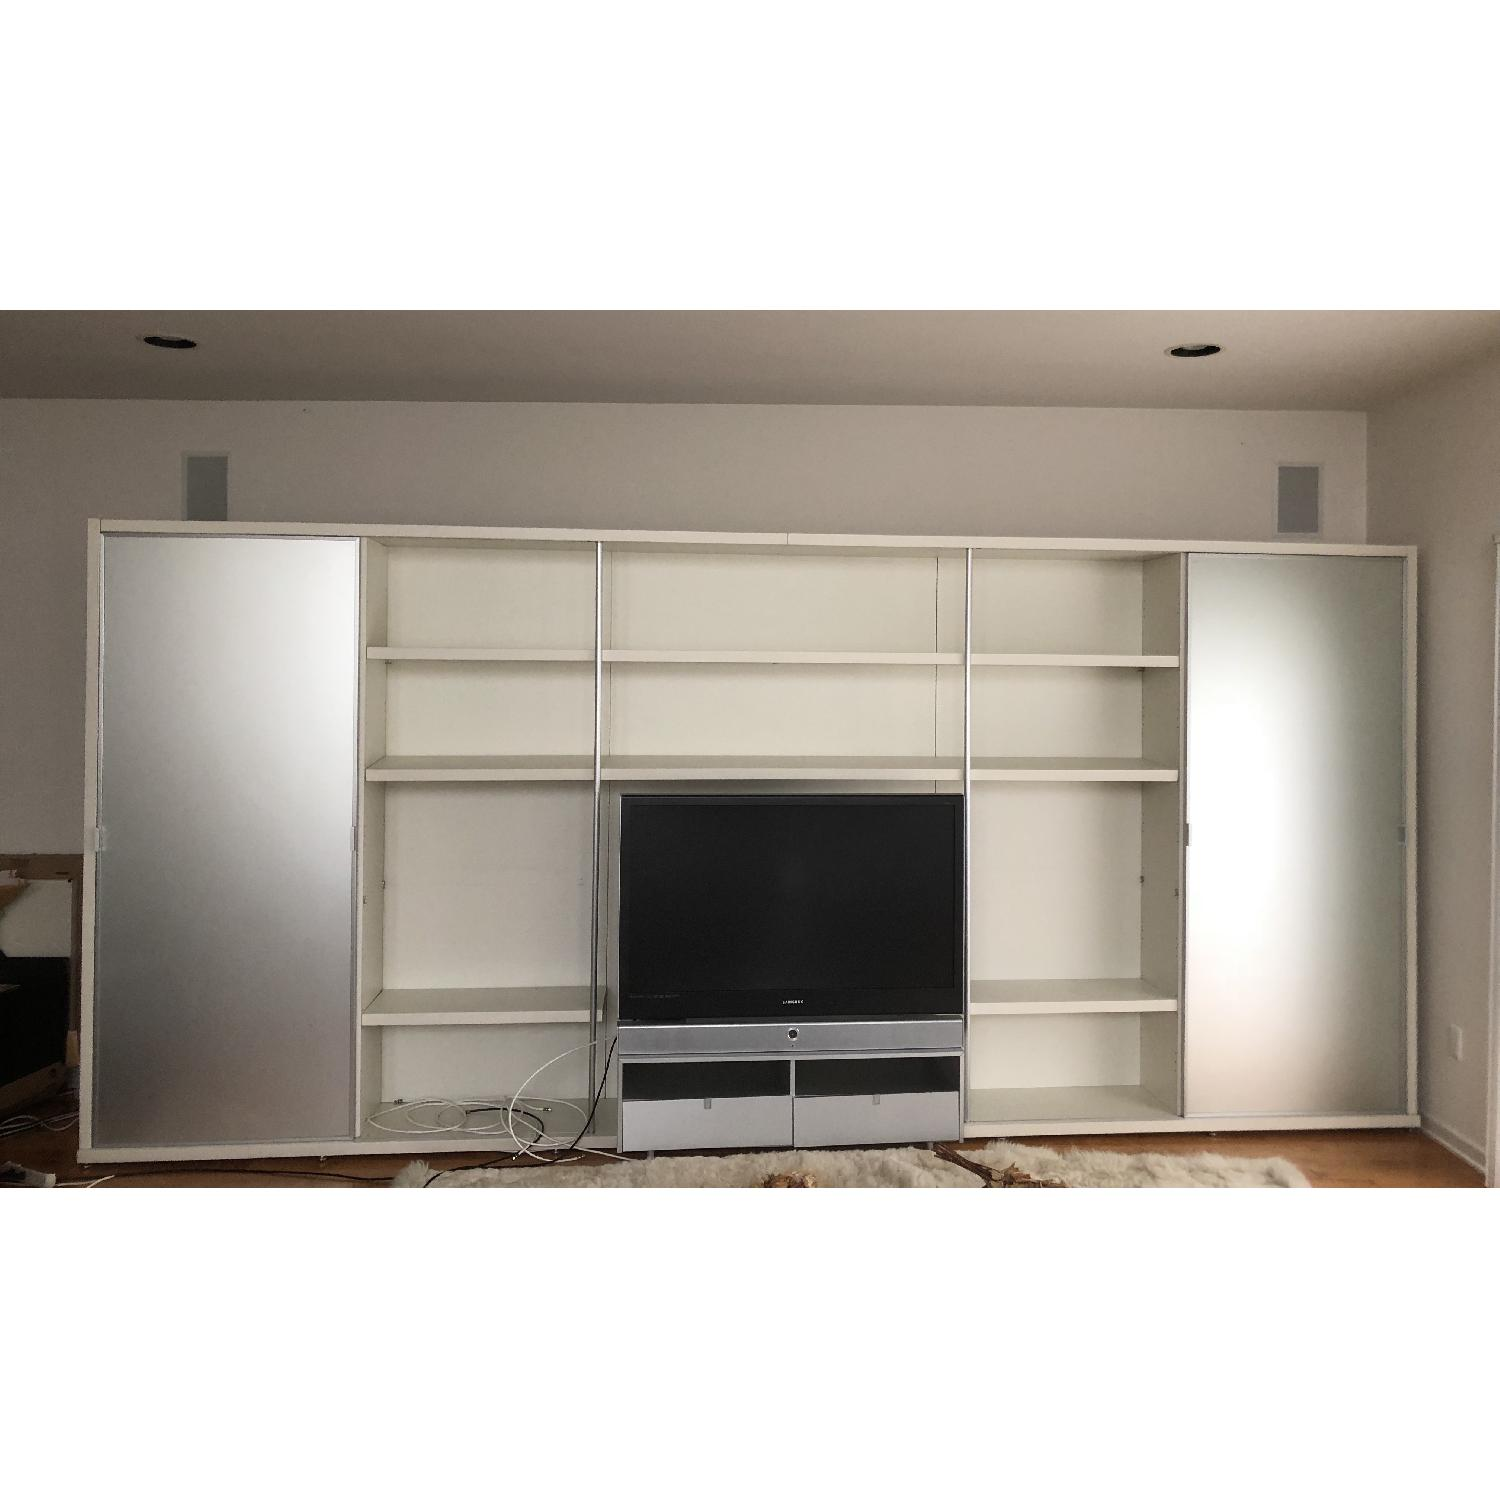 DDC NYC Modern Contemporary Frosted Glass Media Wall Unit - image-4